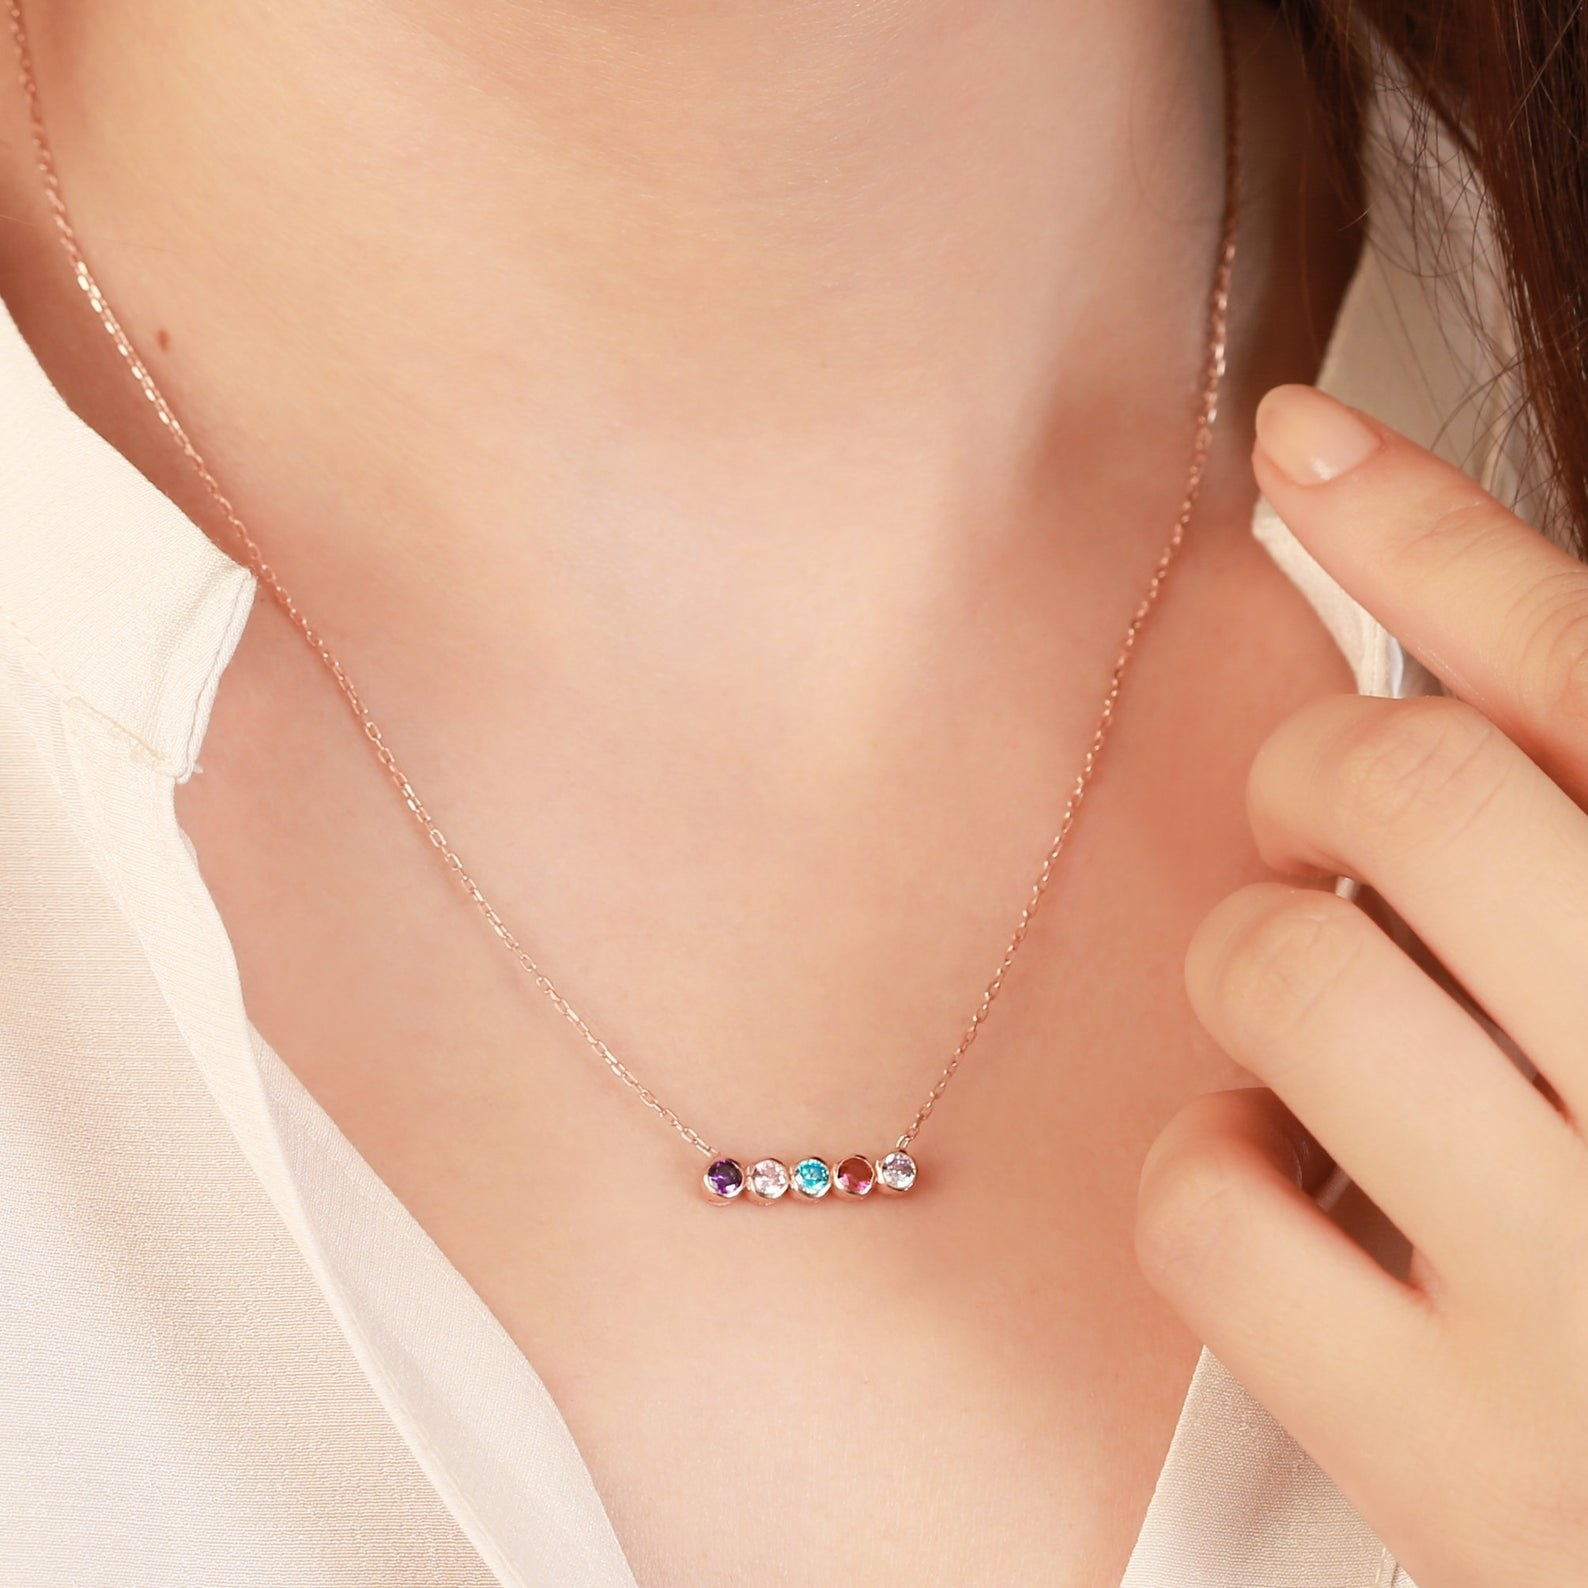 close up of necklace on neck with five birthstones